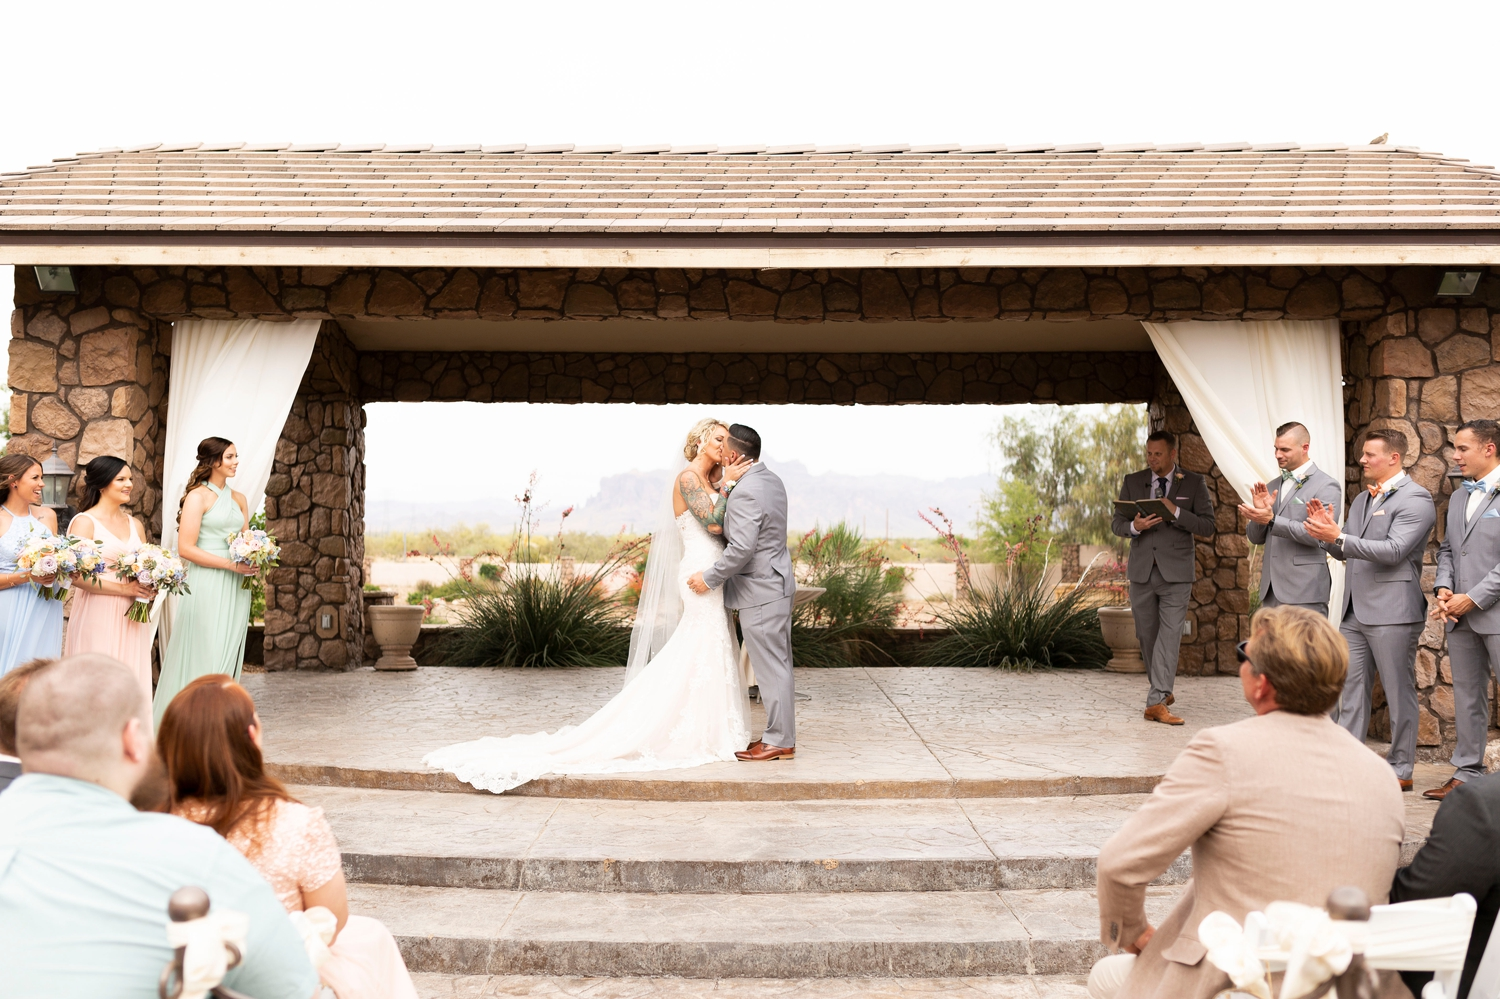 first kiss, wedding ceremony, candid wedding, documentary photography, Superstition Manor, Superstition Wedding, Spring Wedding Inspiration, Arizona Destination Wedding, Arizona Wedding Photographer, Mesa Wedding Venues, Destination Wedding, Superstition Springs, arizona wedding